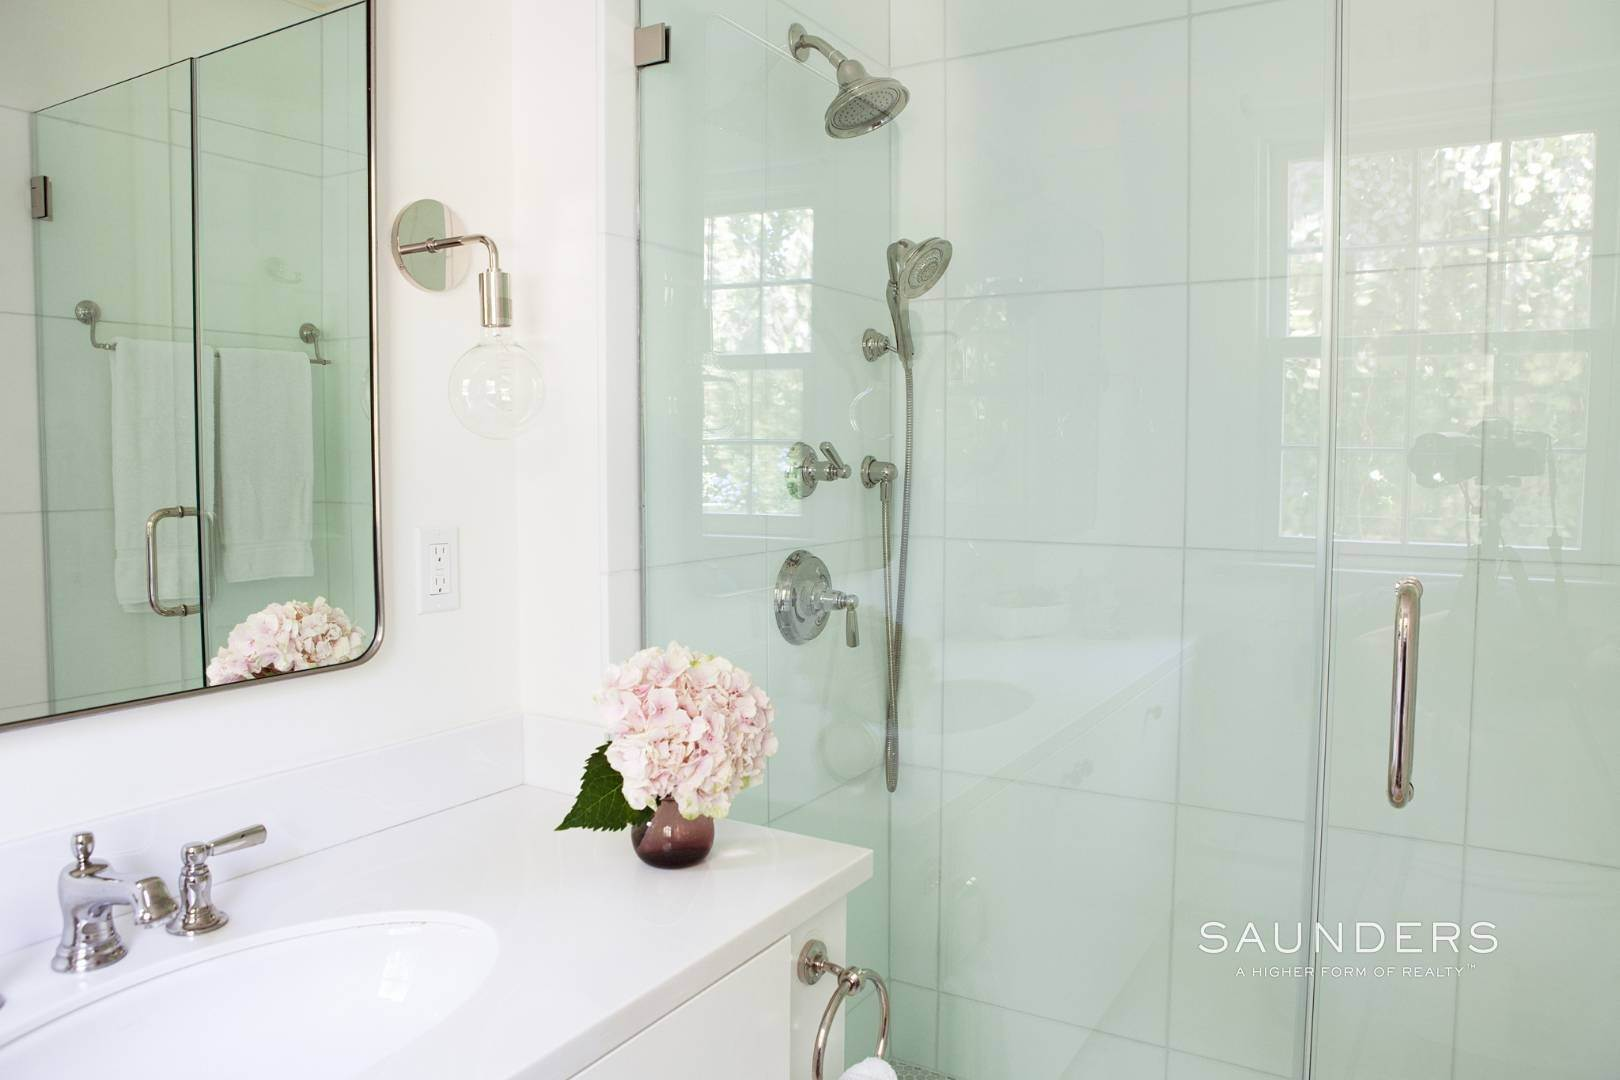 11. Single Family Homes for Sale at Designer-Owned Villa In East Hampton Village Estate Section 46 Woods Lane, East Hampton, East Hampton Town, NY 11937